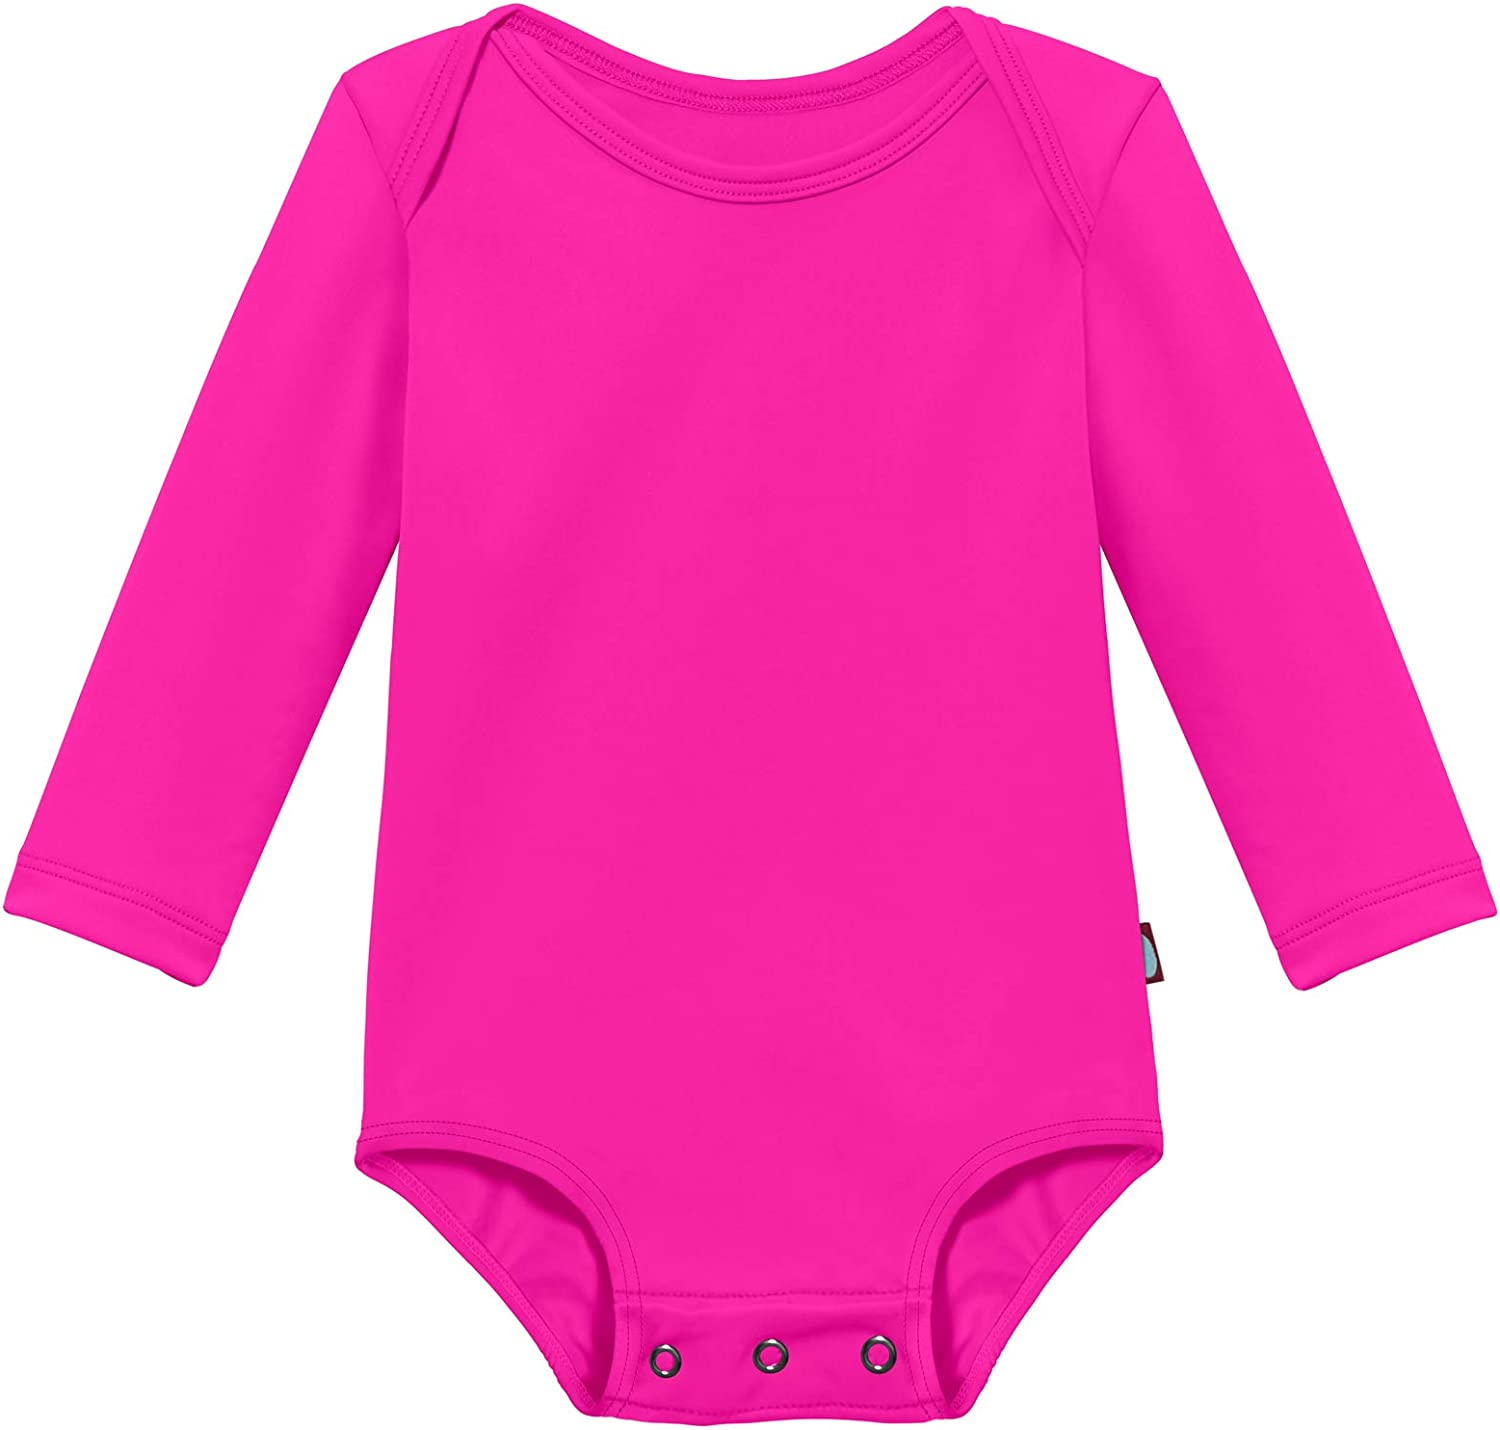 Made in USA City Threads Baby Rash Guard Long Sleeves Sun Protection Beach Wear with UPF50